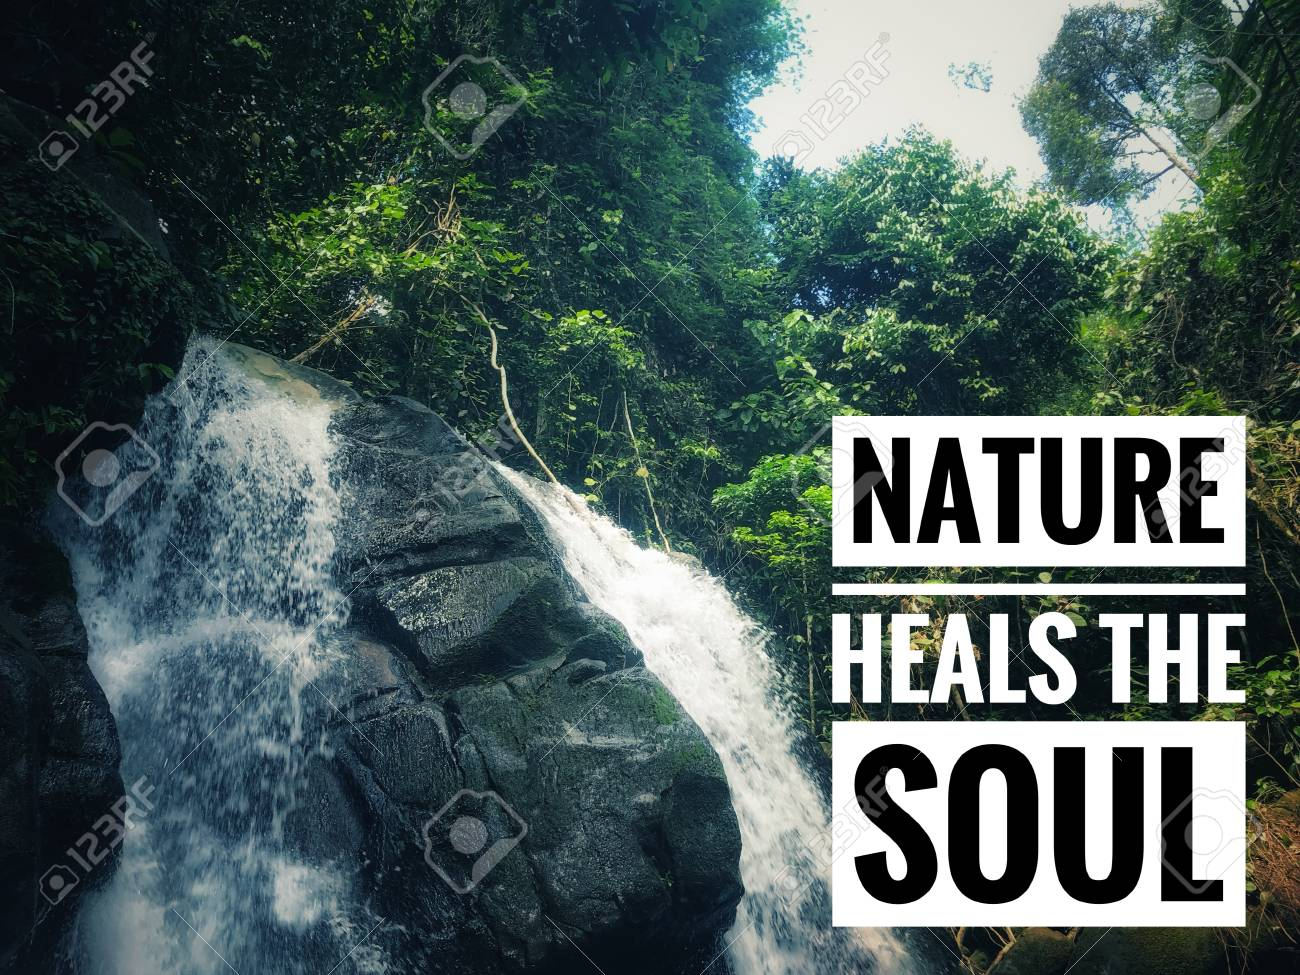 motivational and inspirational quote nature heals the soul